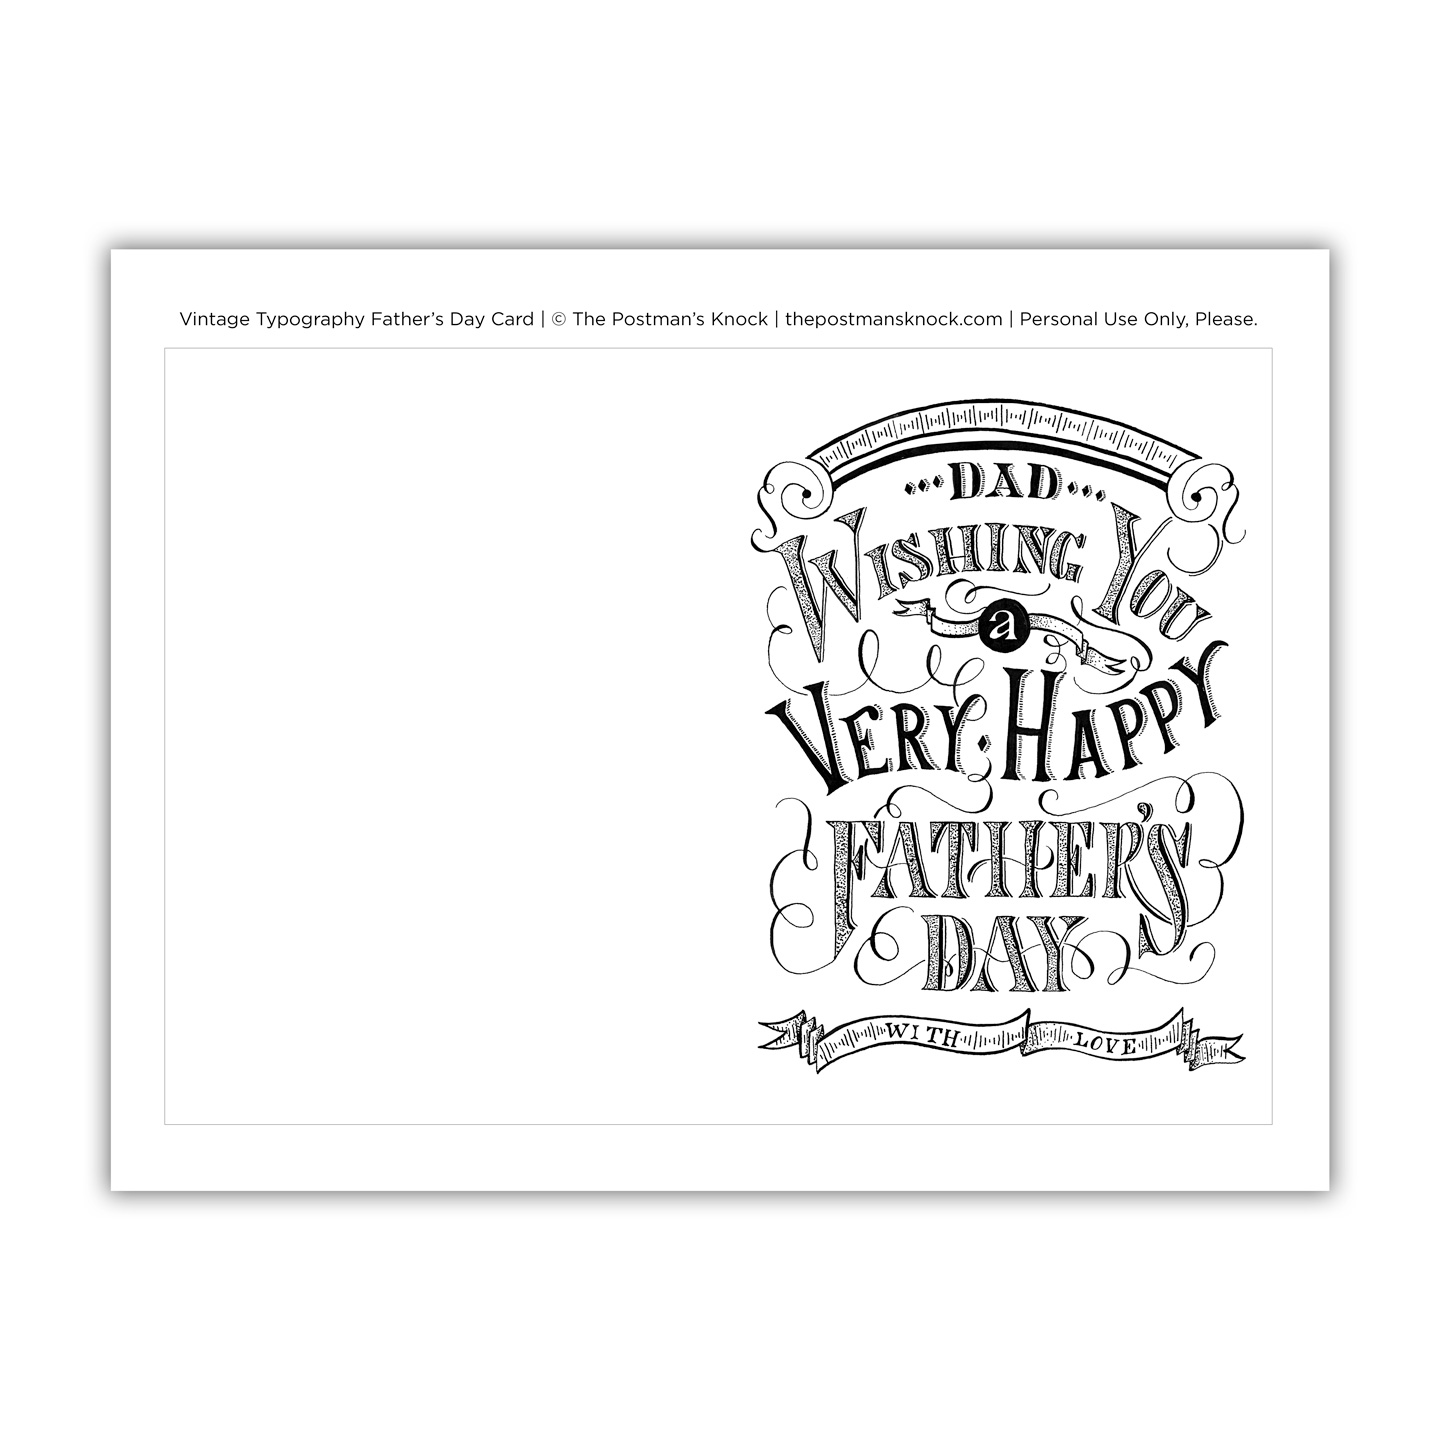 photo about Printable Fathers Day Cards referred to as Typical Typography Fathers Working day Card